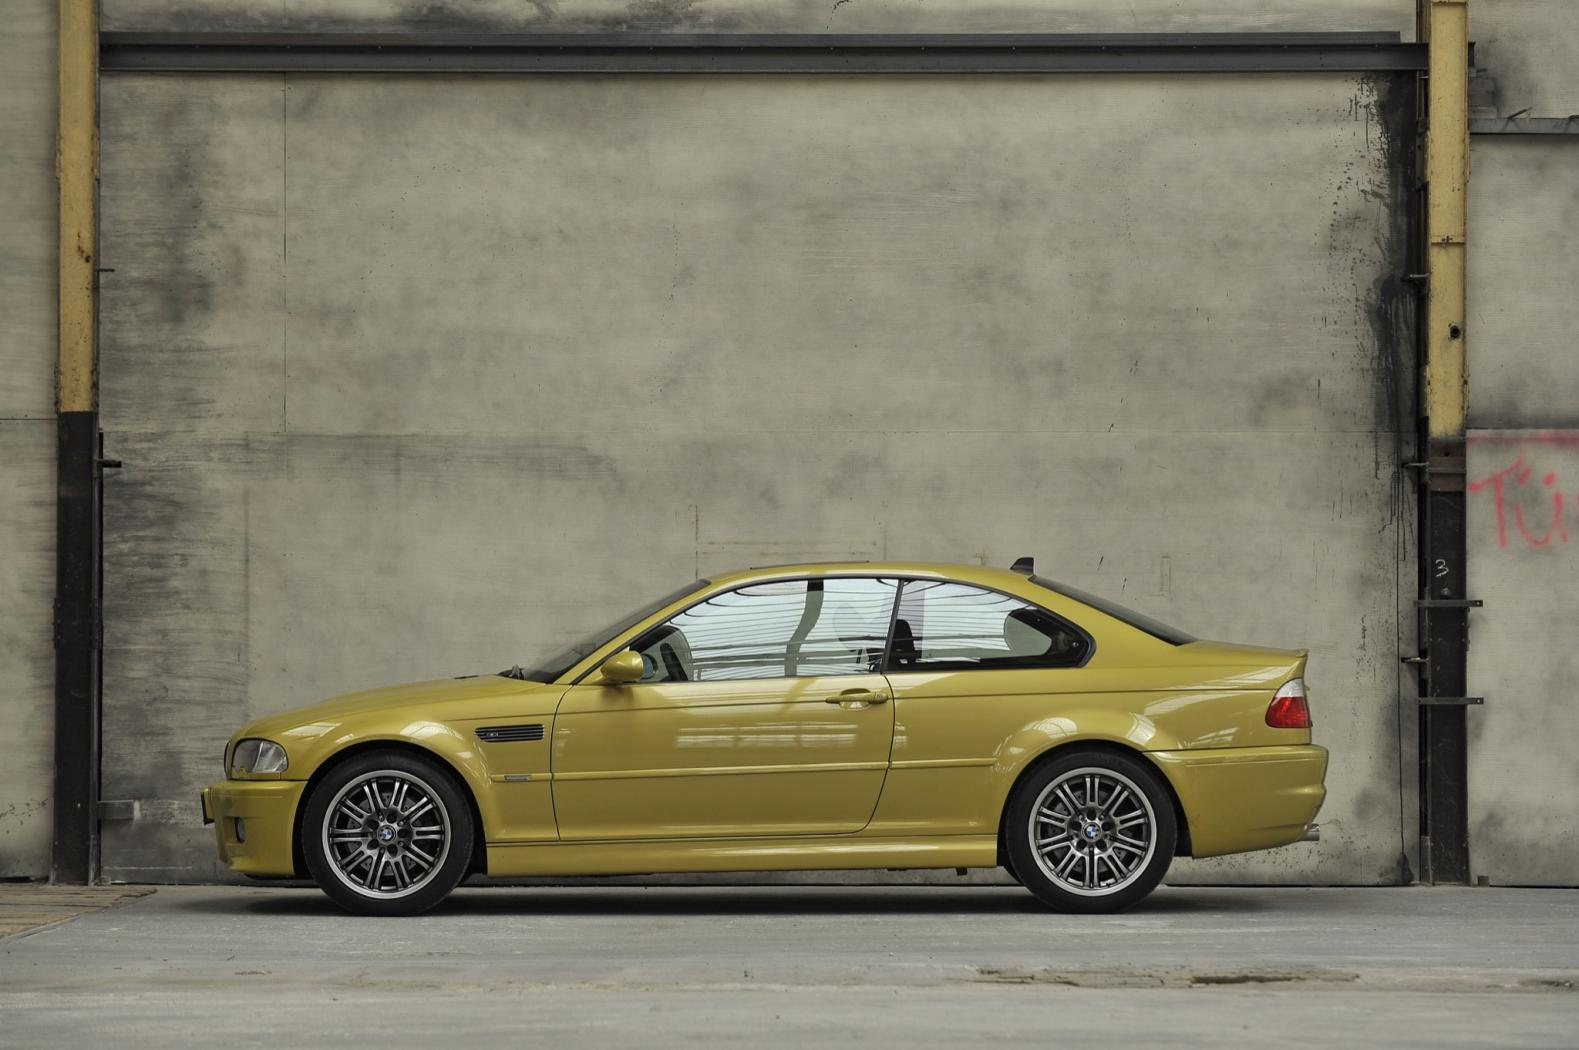 BMW-M3-E46-Coupe-3.jpeg